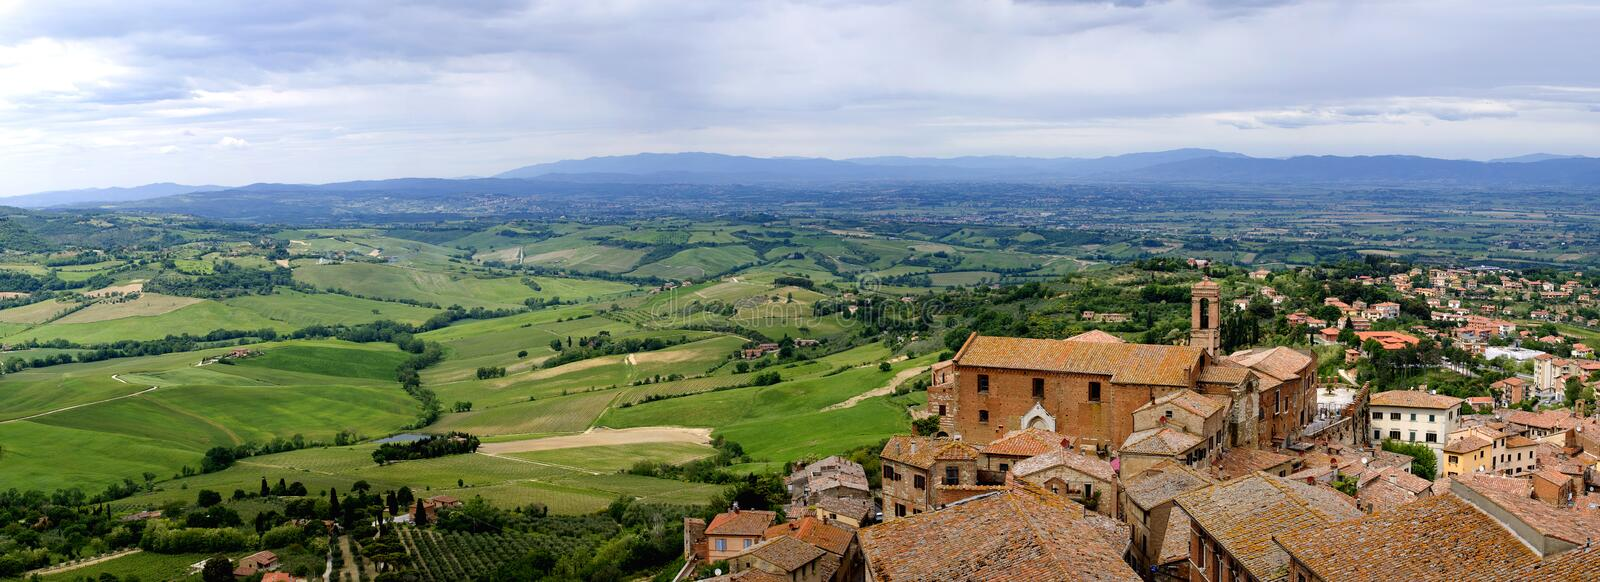 View of Val d'Orcia valley. Montepulciano. View of Val d'Orcia valley from an observation deck in Montepulciano. Tuscany, Italy stock photography